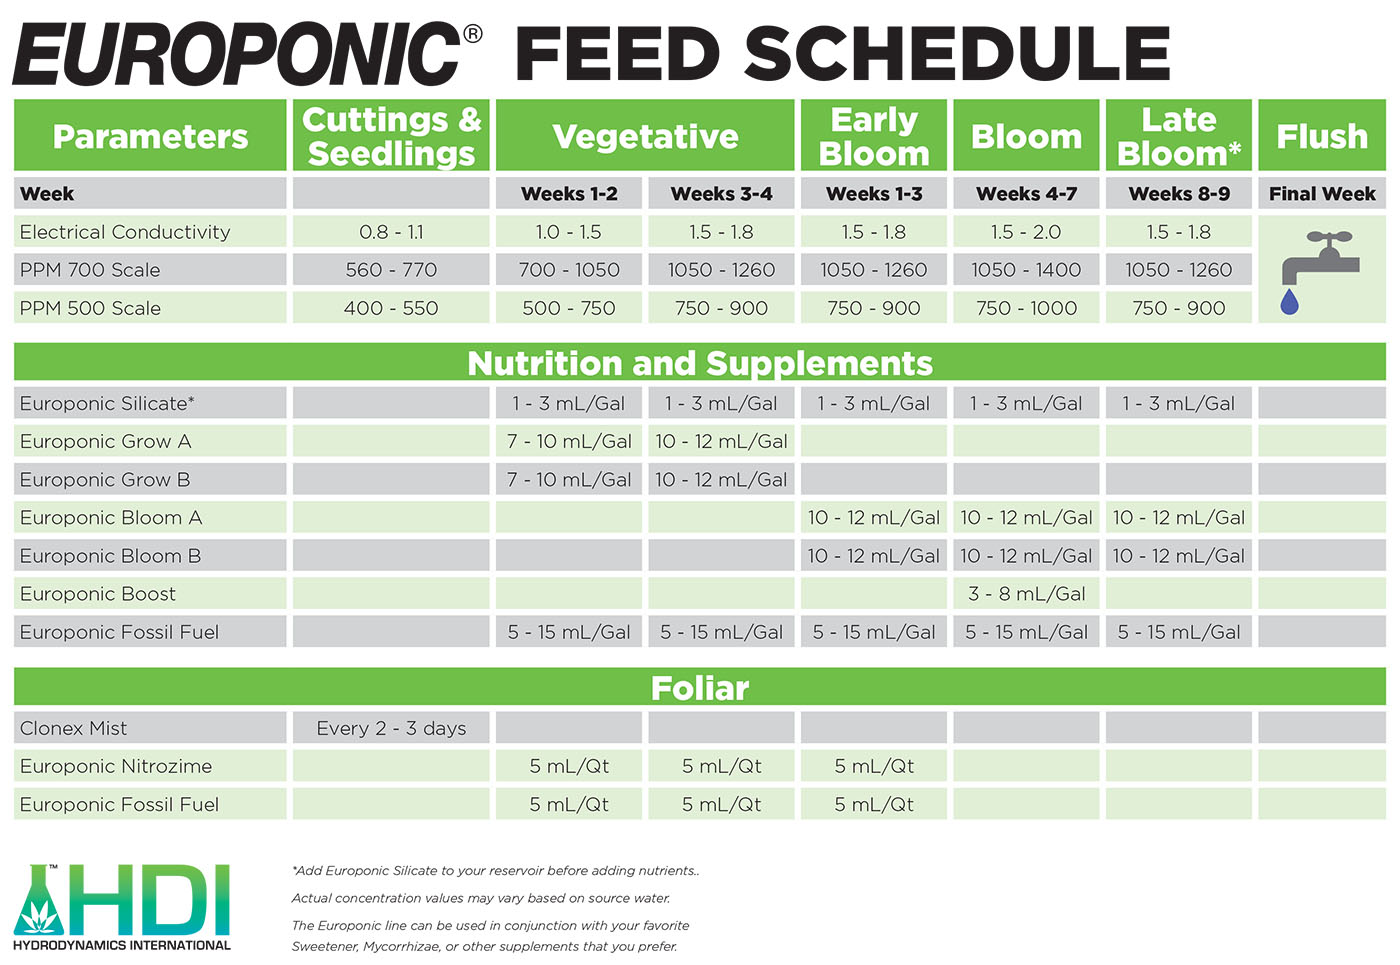 Hydrodynamics international nutrients for hydroponics and soil hdi for House and garden feeding schedule